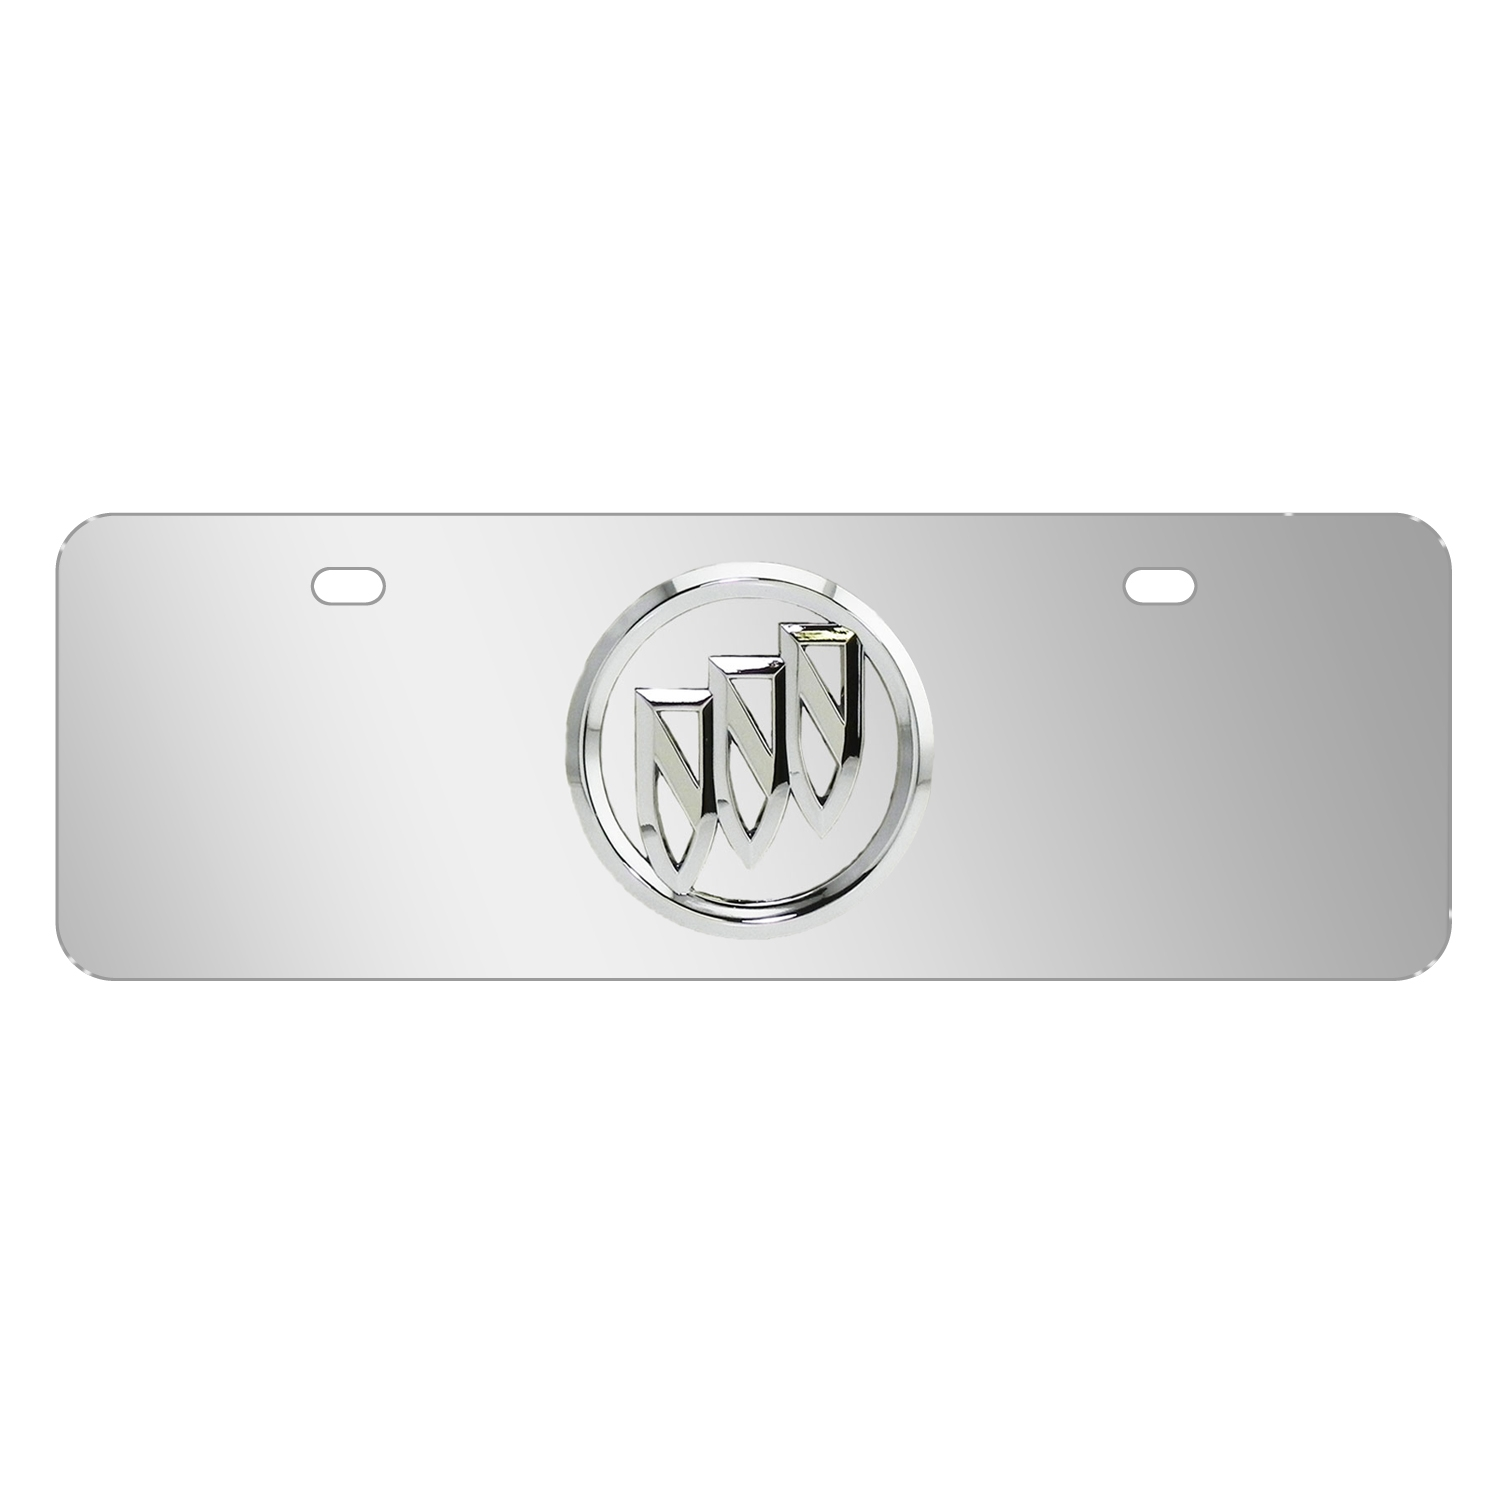 "Buick 3D Chrome Metal Logo Mirror Chrome 12""x4"" Half-Size Stainless Steel License Plate"